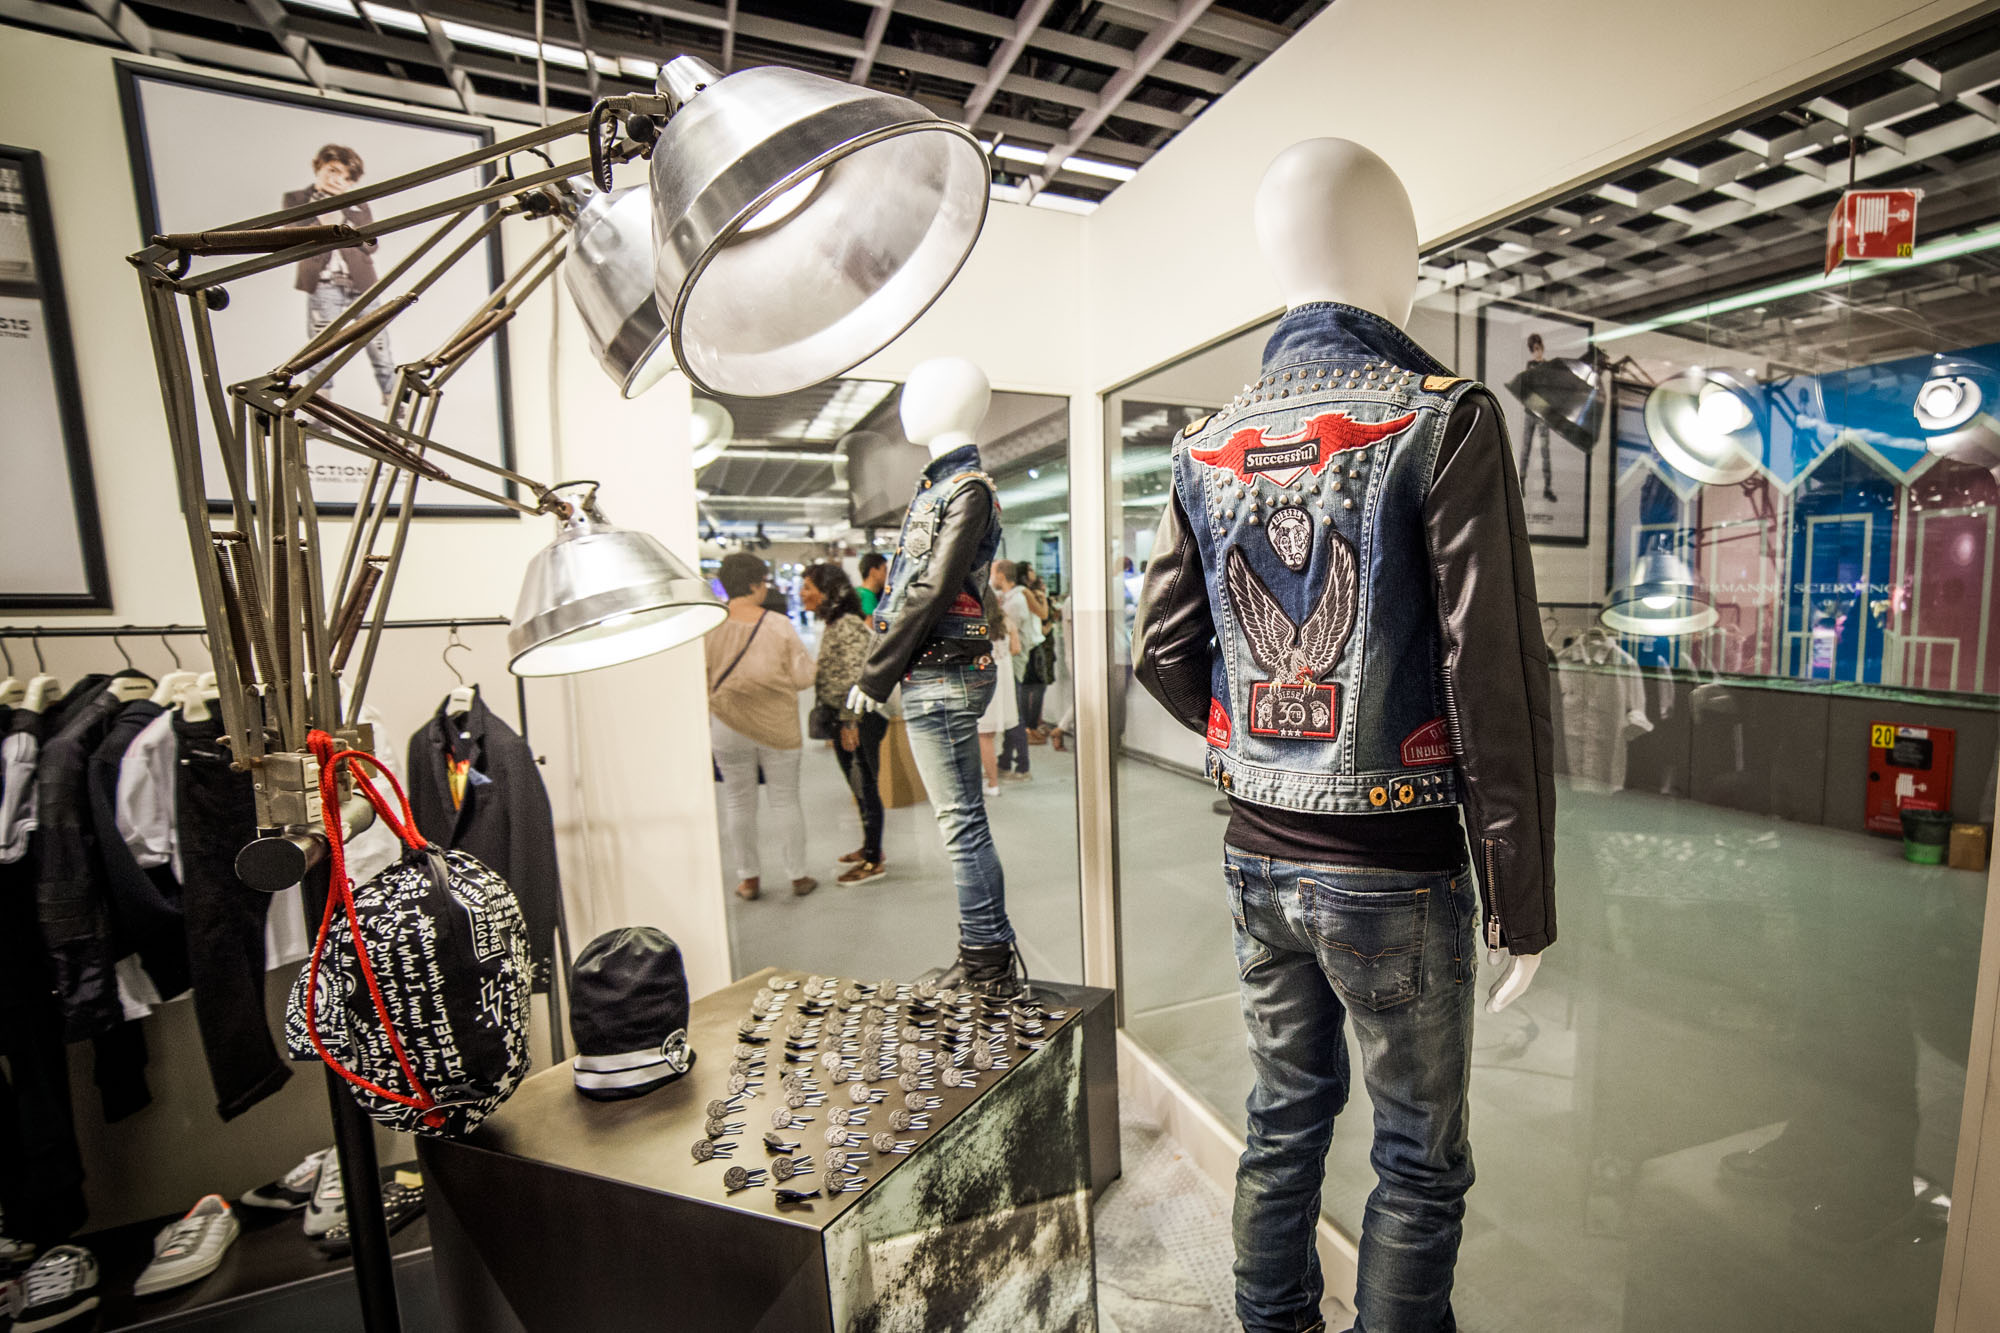 DIESEL - Pitti Bimbo, Firenze (IT) - 2014